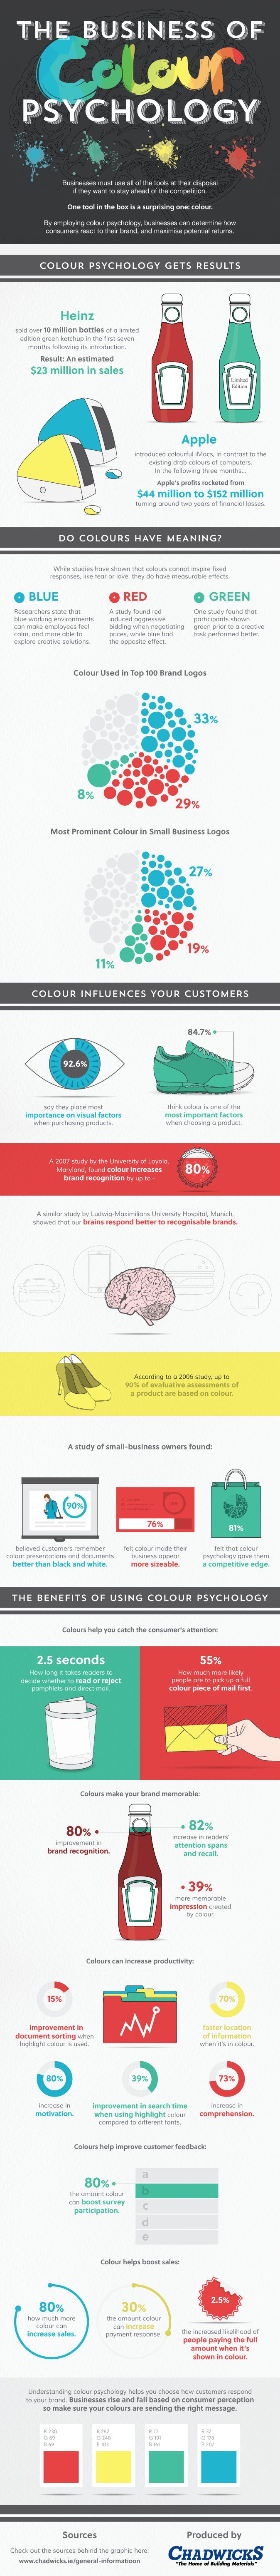 Infographic: How Color Psychology Can Help In Your Branding - DesignTAXI.com